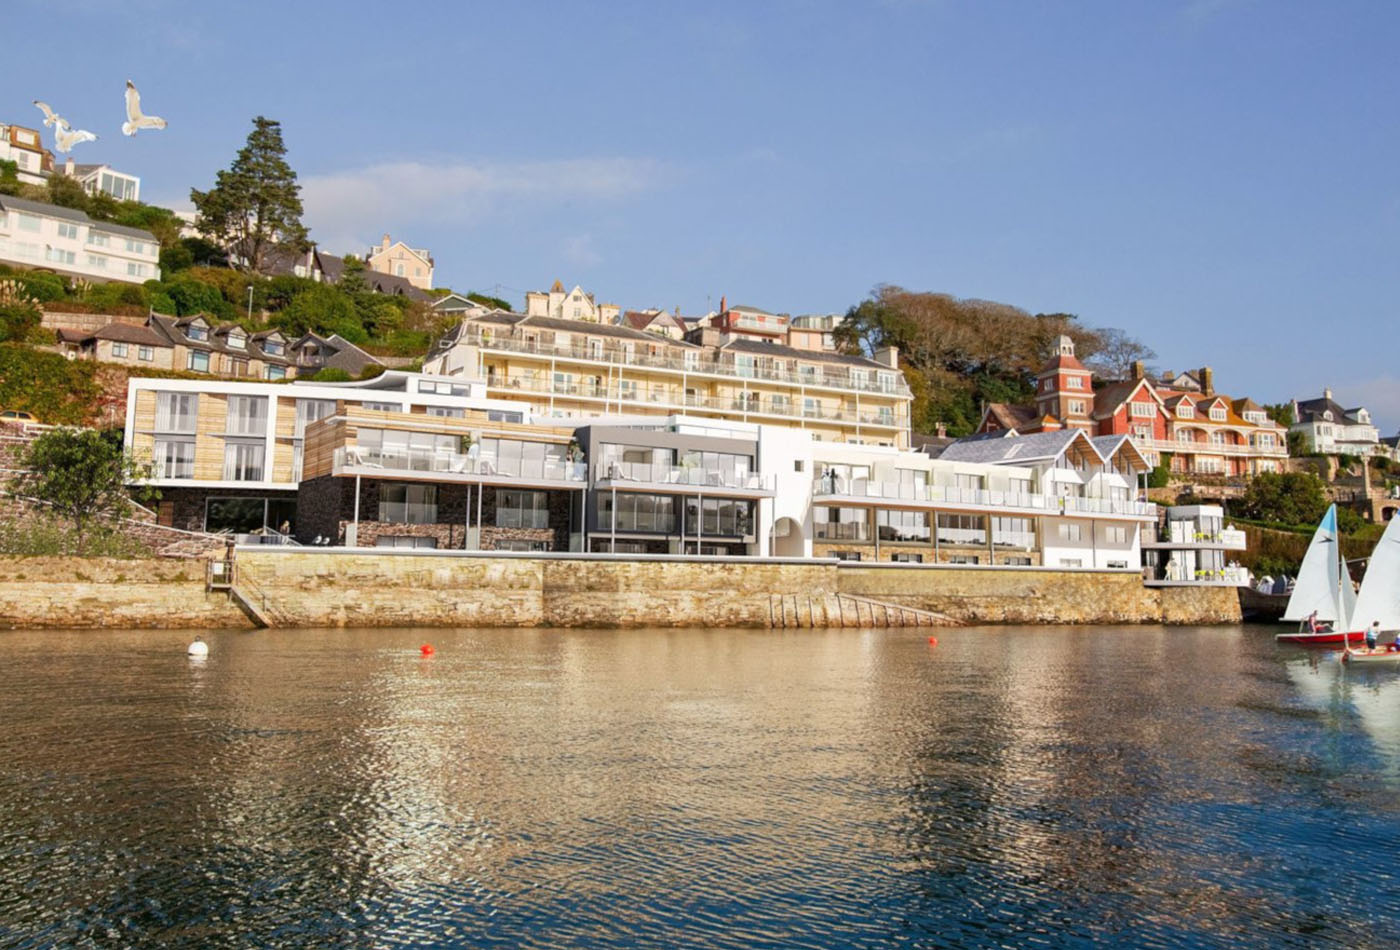 Holiday let business rates - Salcombe holiday lets